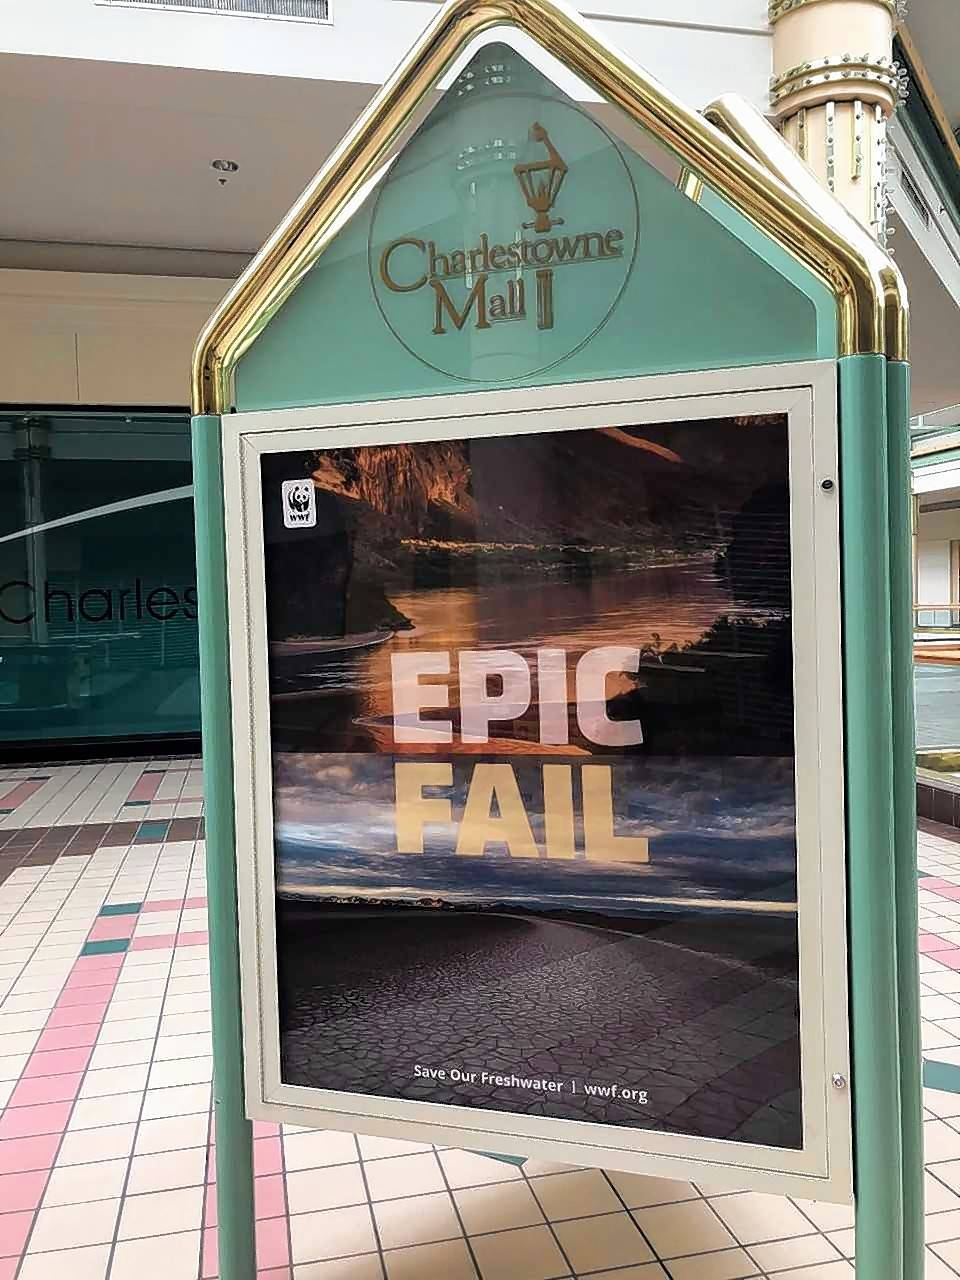 A poster inside St. Charles' Charlestowne Mall tells the full story of the retail history of the building.